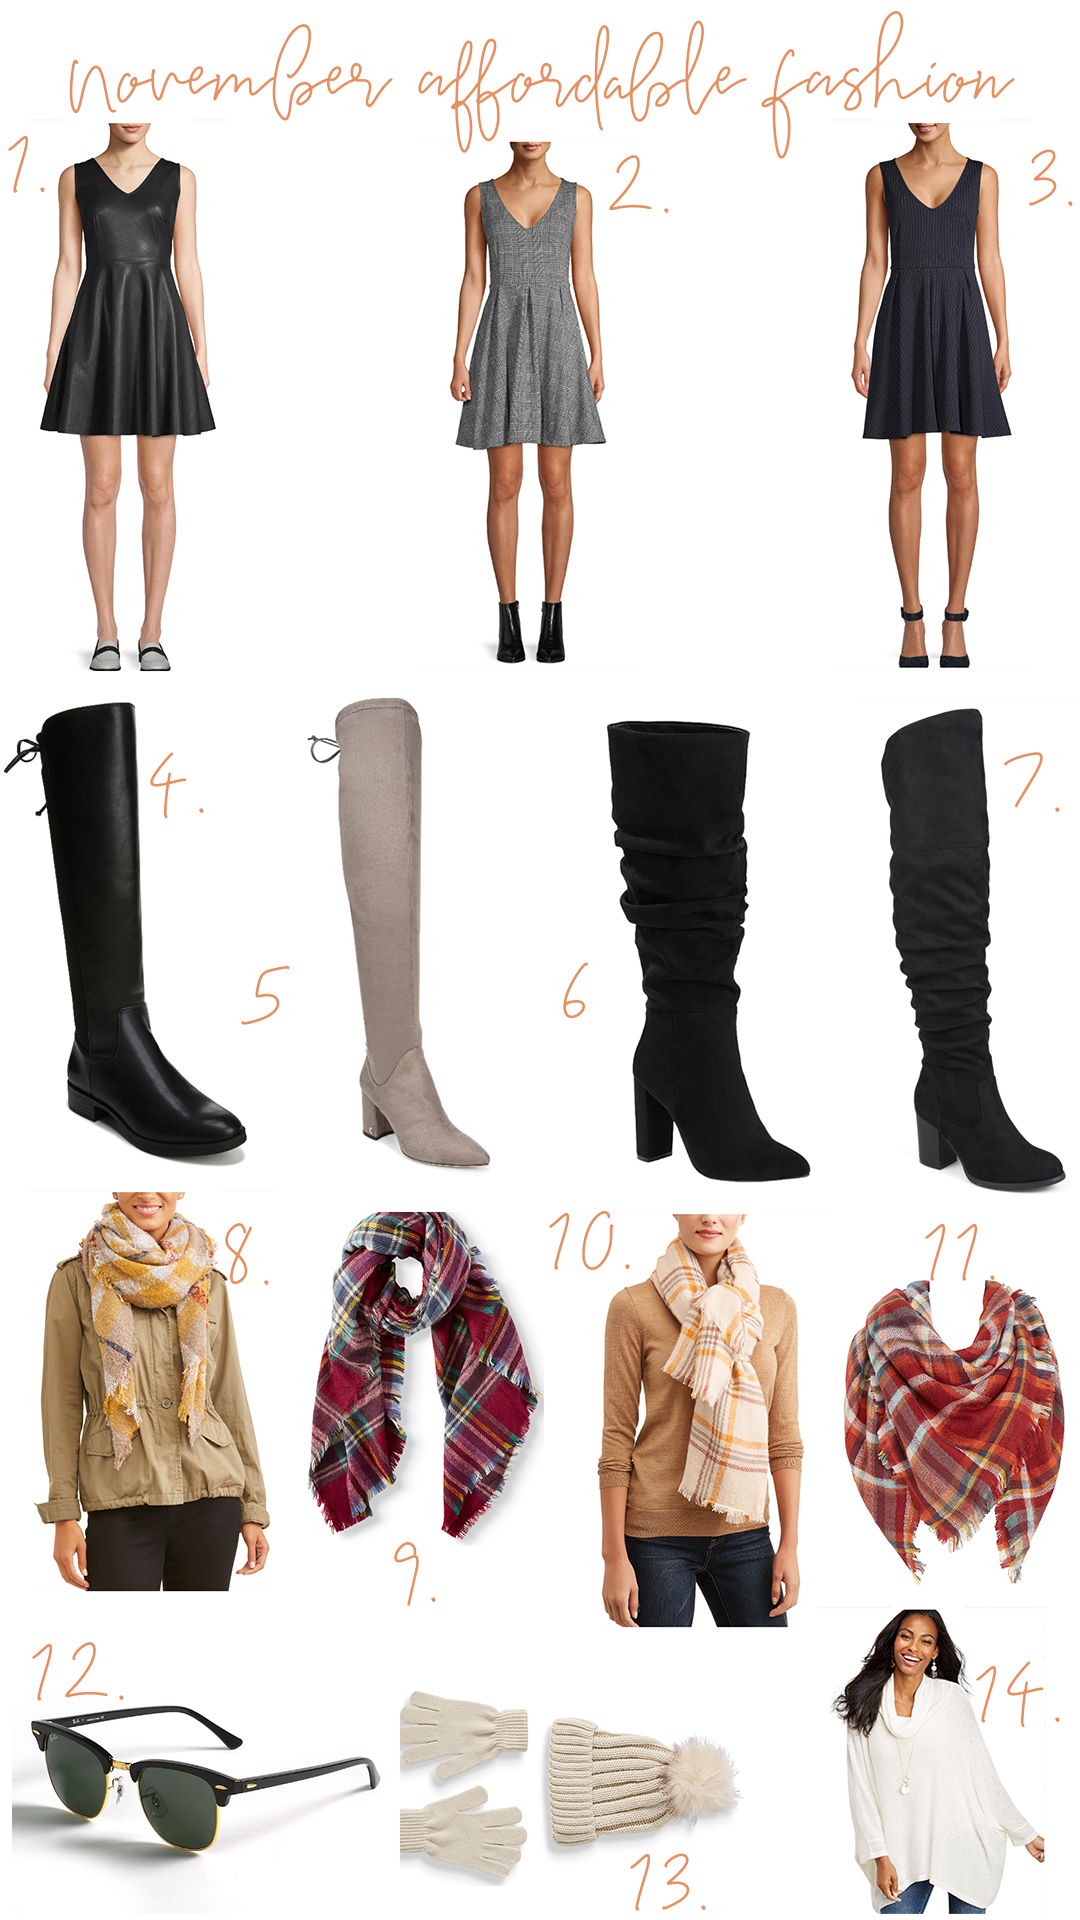 Faux Leather & Cozy Plaid For November - Loving these relaxed and fun looks for both day and night in the Fall/Winter transitional time.